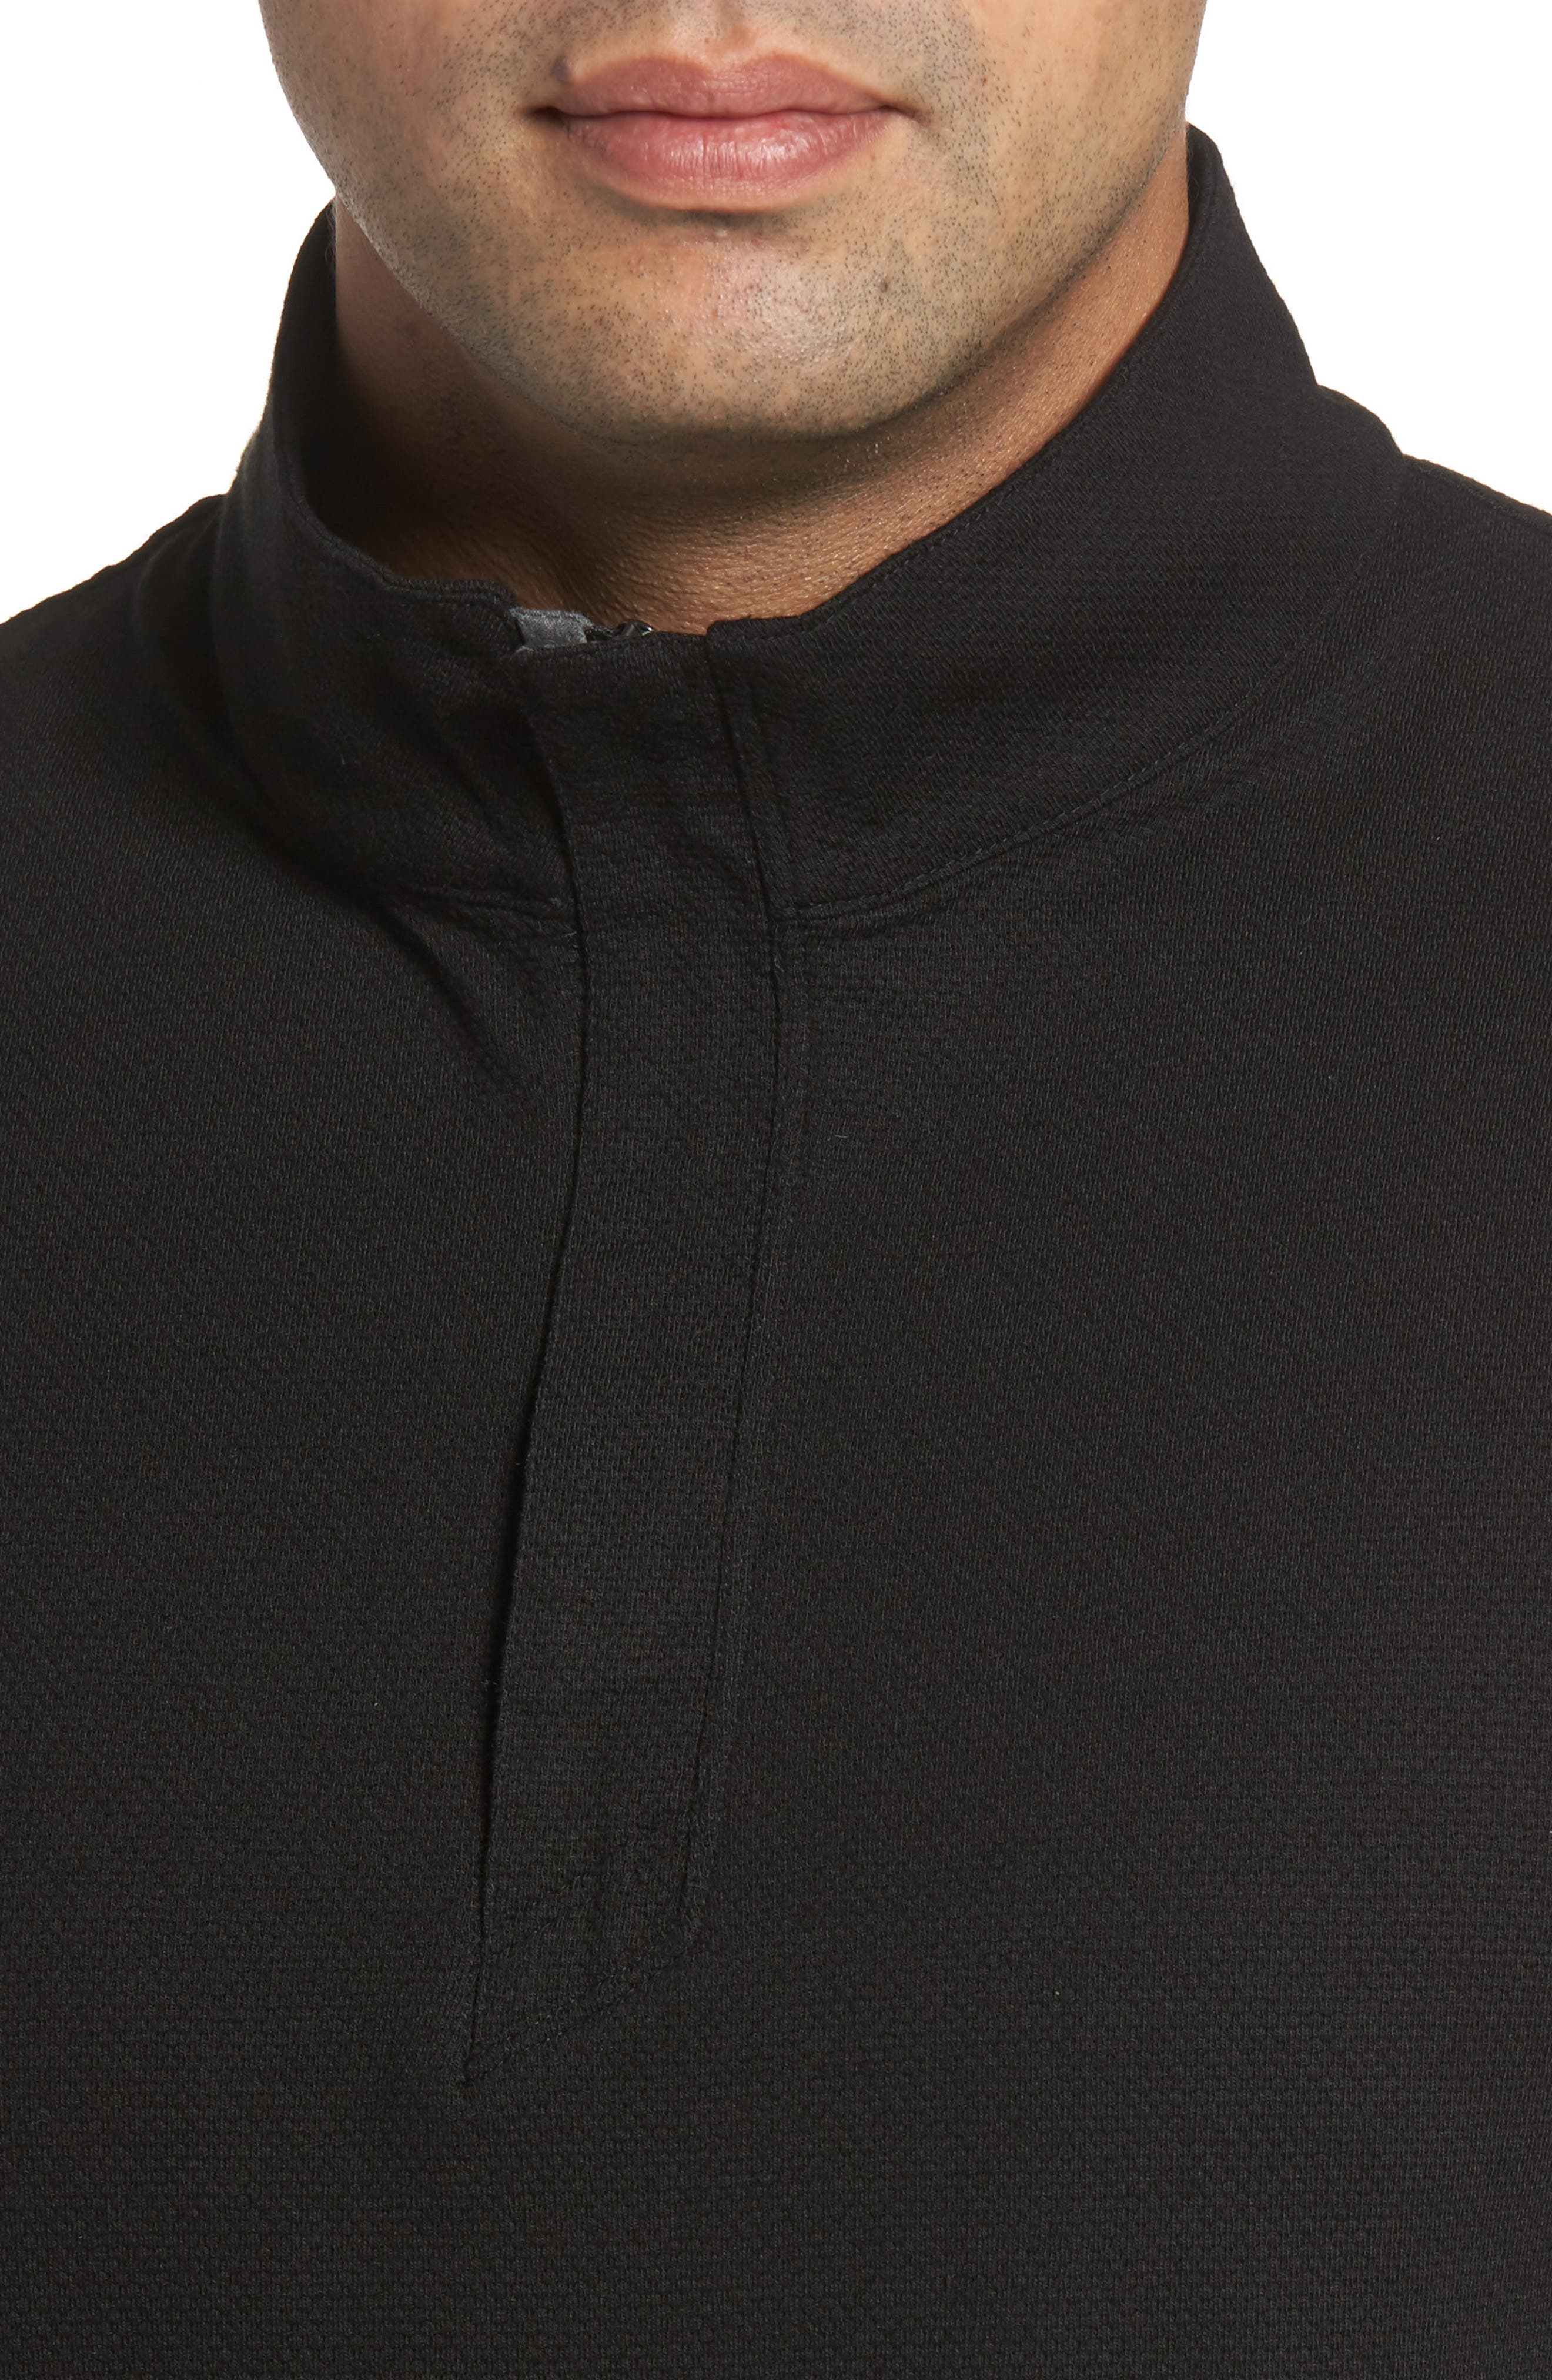 Hewitt Quarter Zip Pullover,                             Alternate thumbnail 4, color,                             001